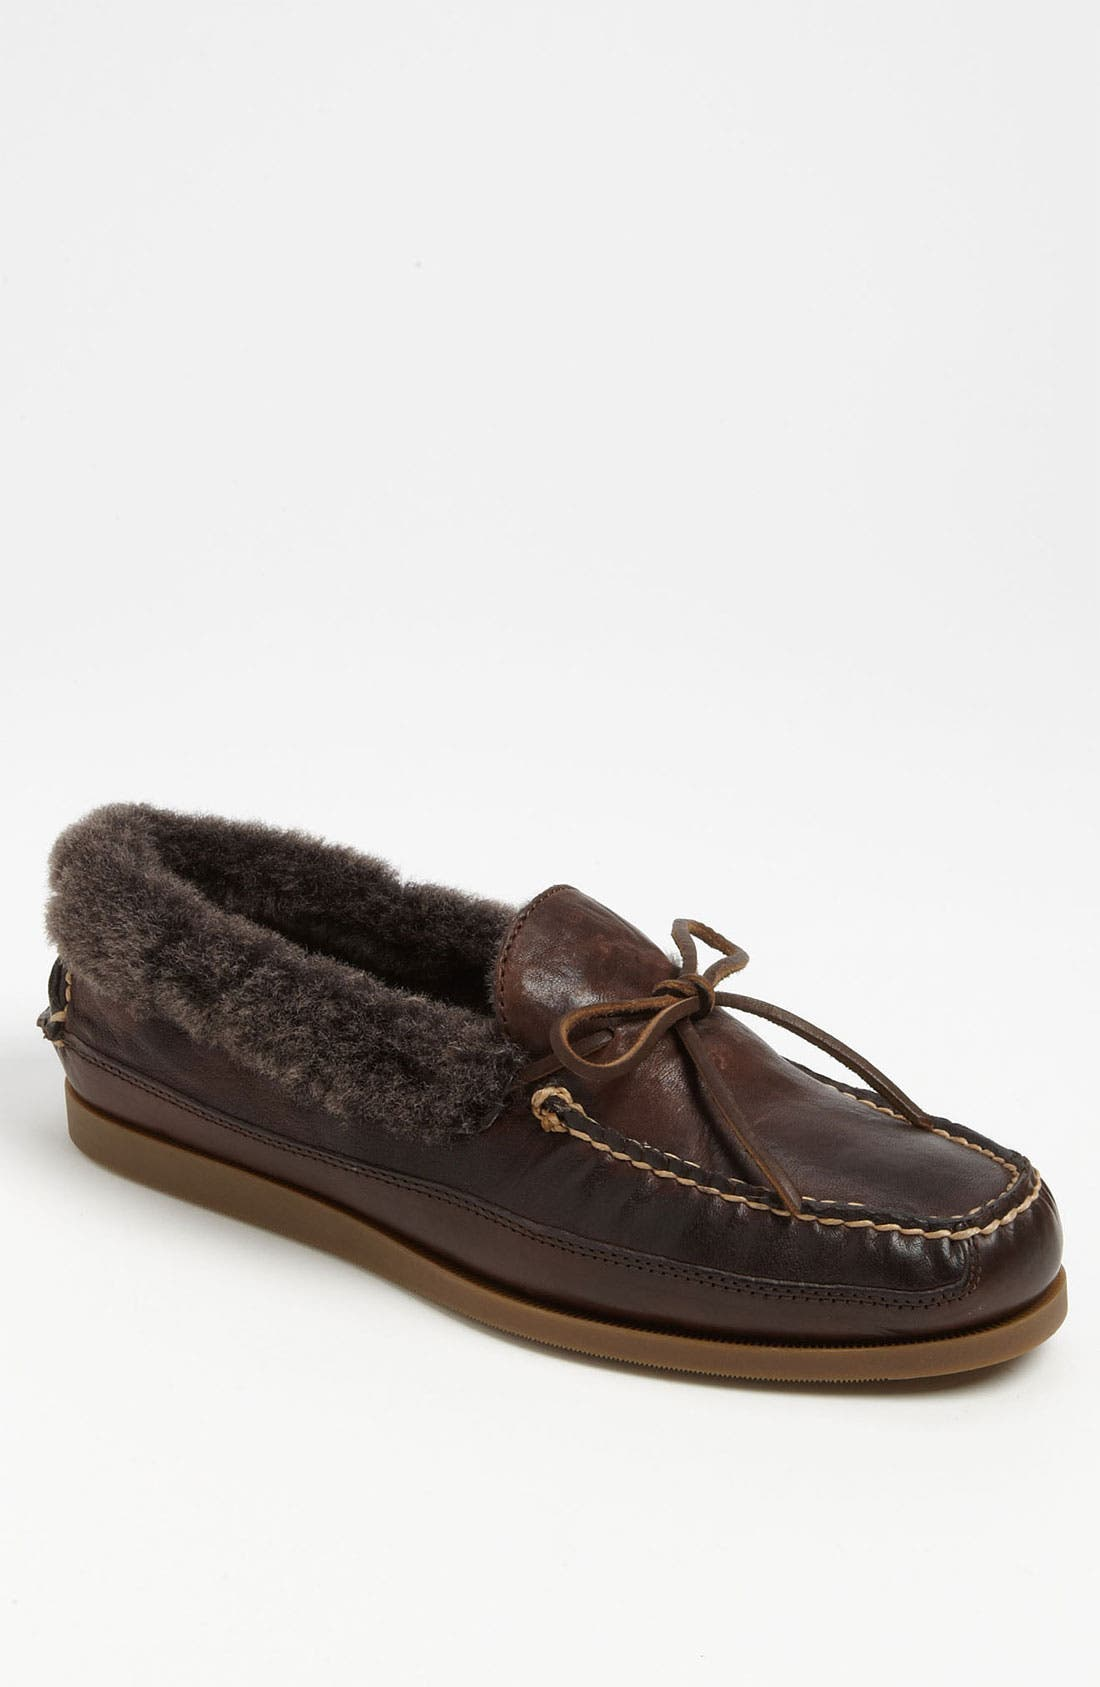 Alternate Image 1 Selected - Frye 'Homer' Slipper